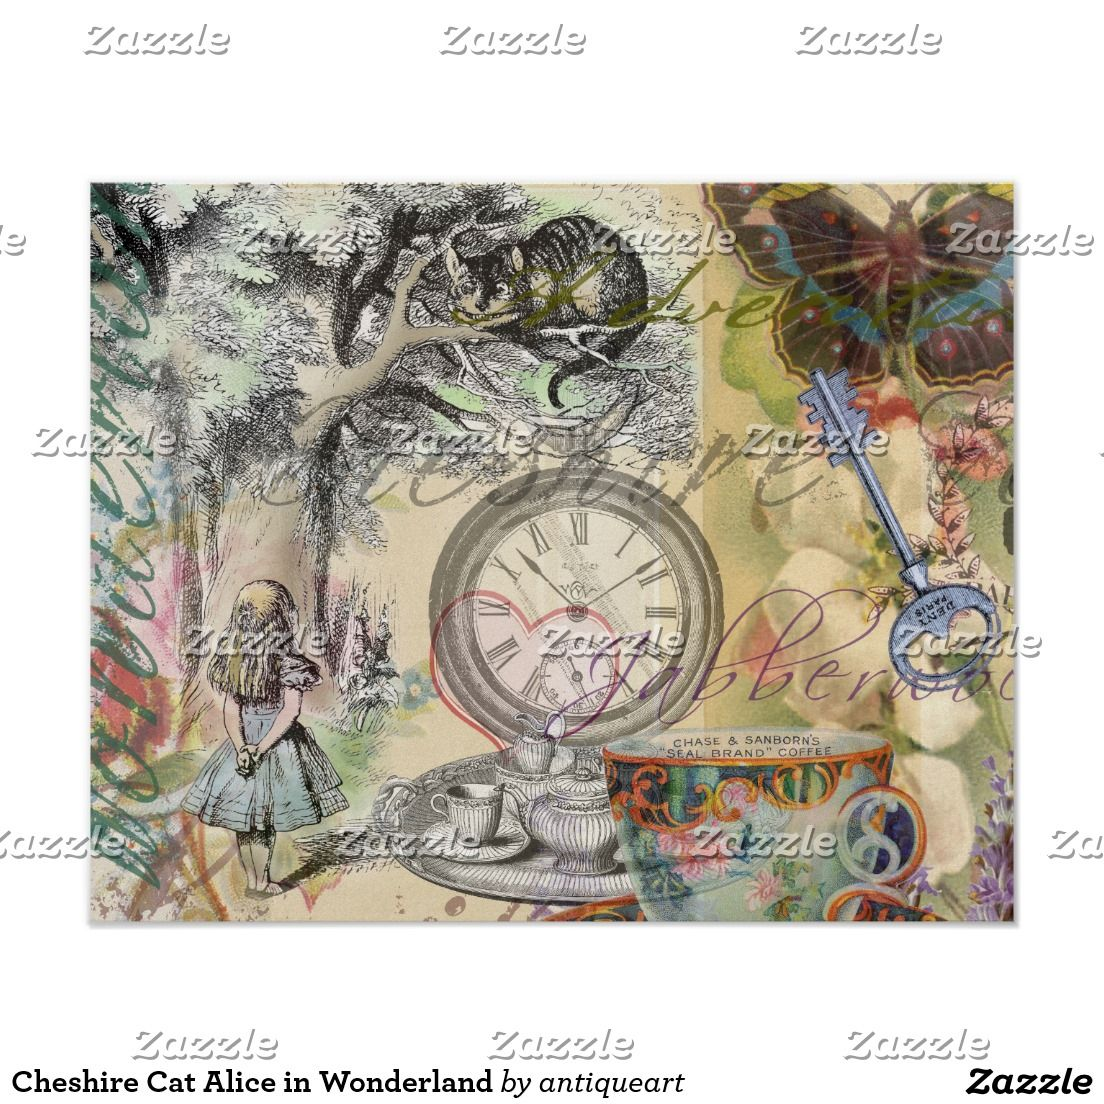 Cheshire Cat Alice In Wonderland Poster Zazzle Com With Images